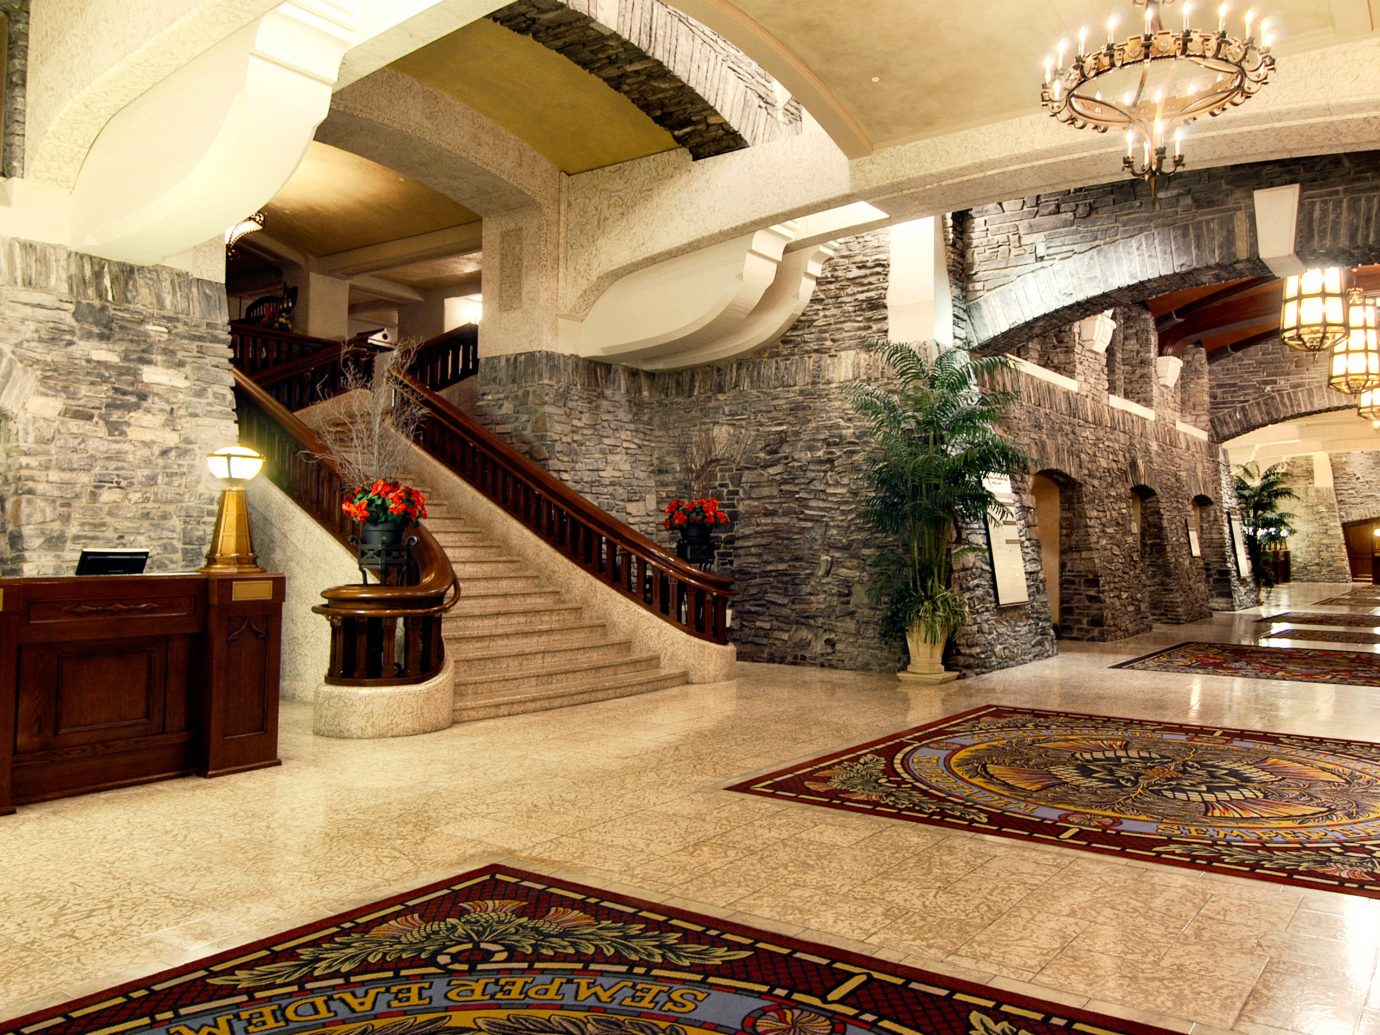 Lobby at Fairmont Banff Springs Hotel